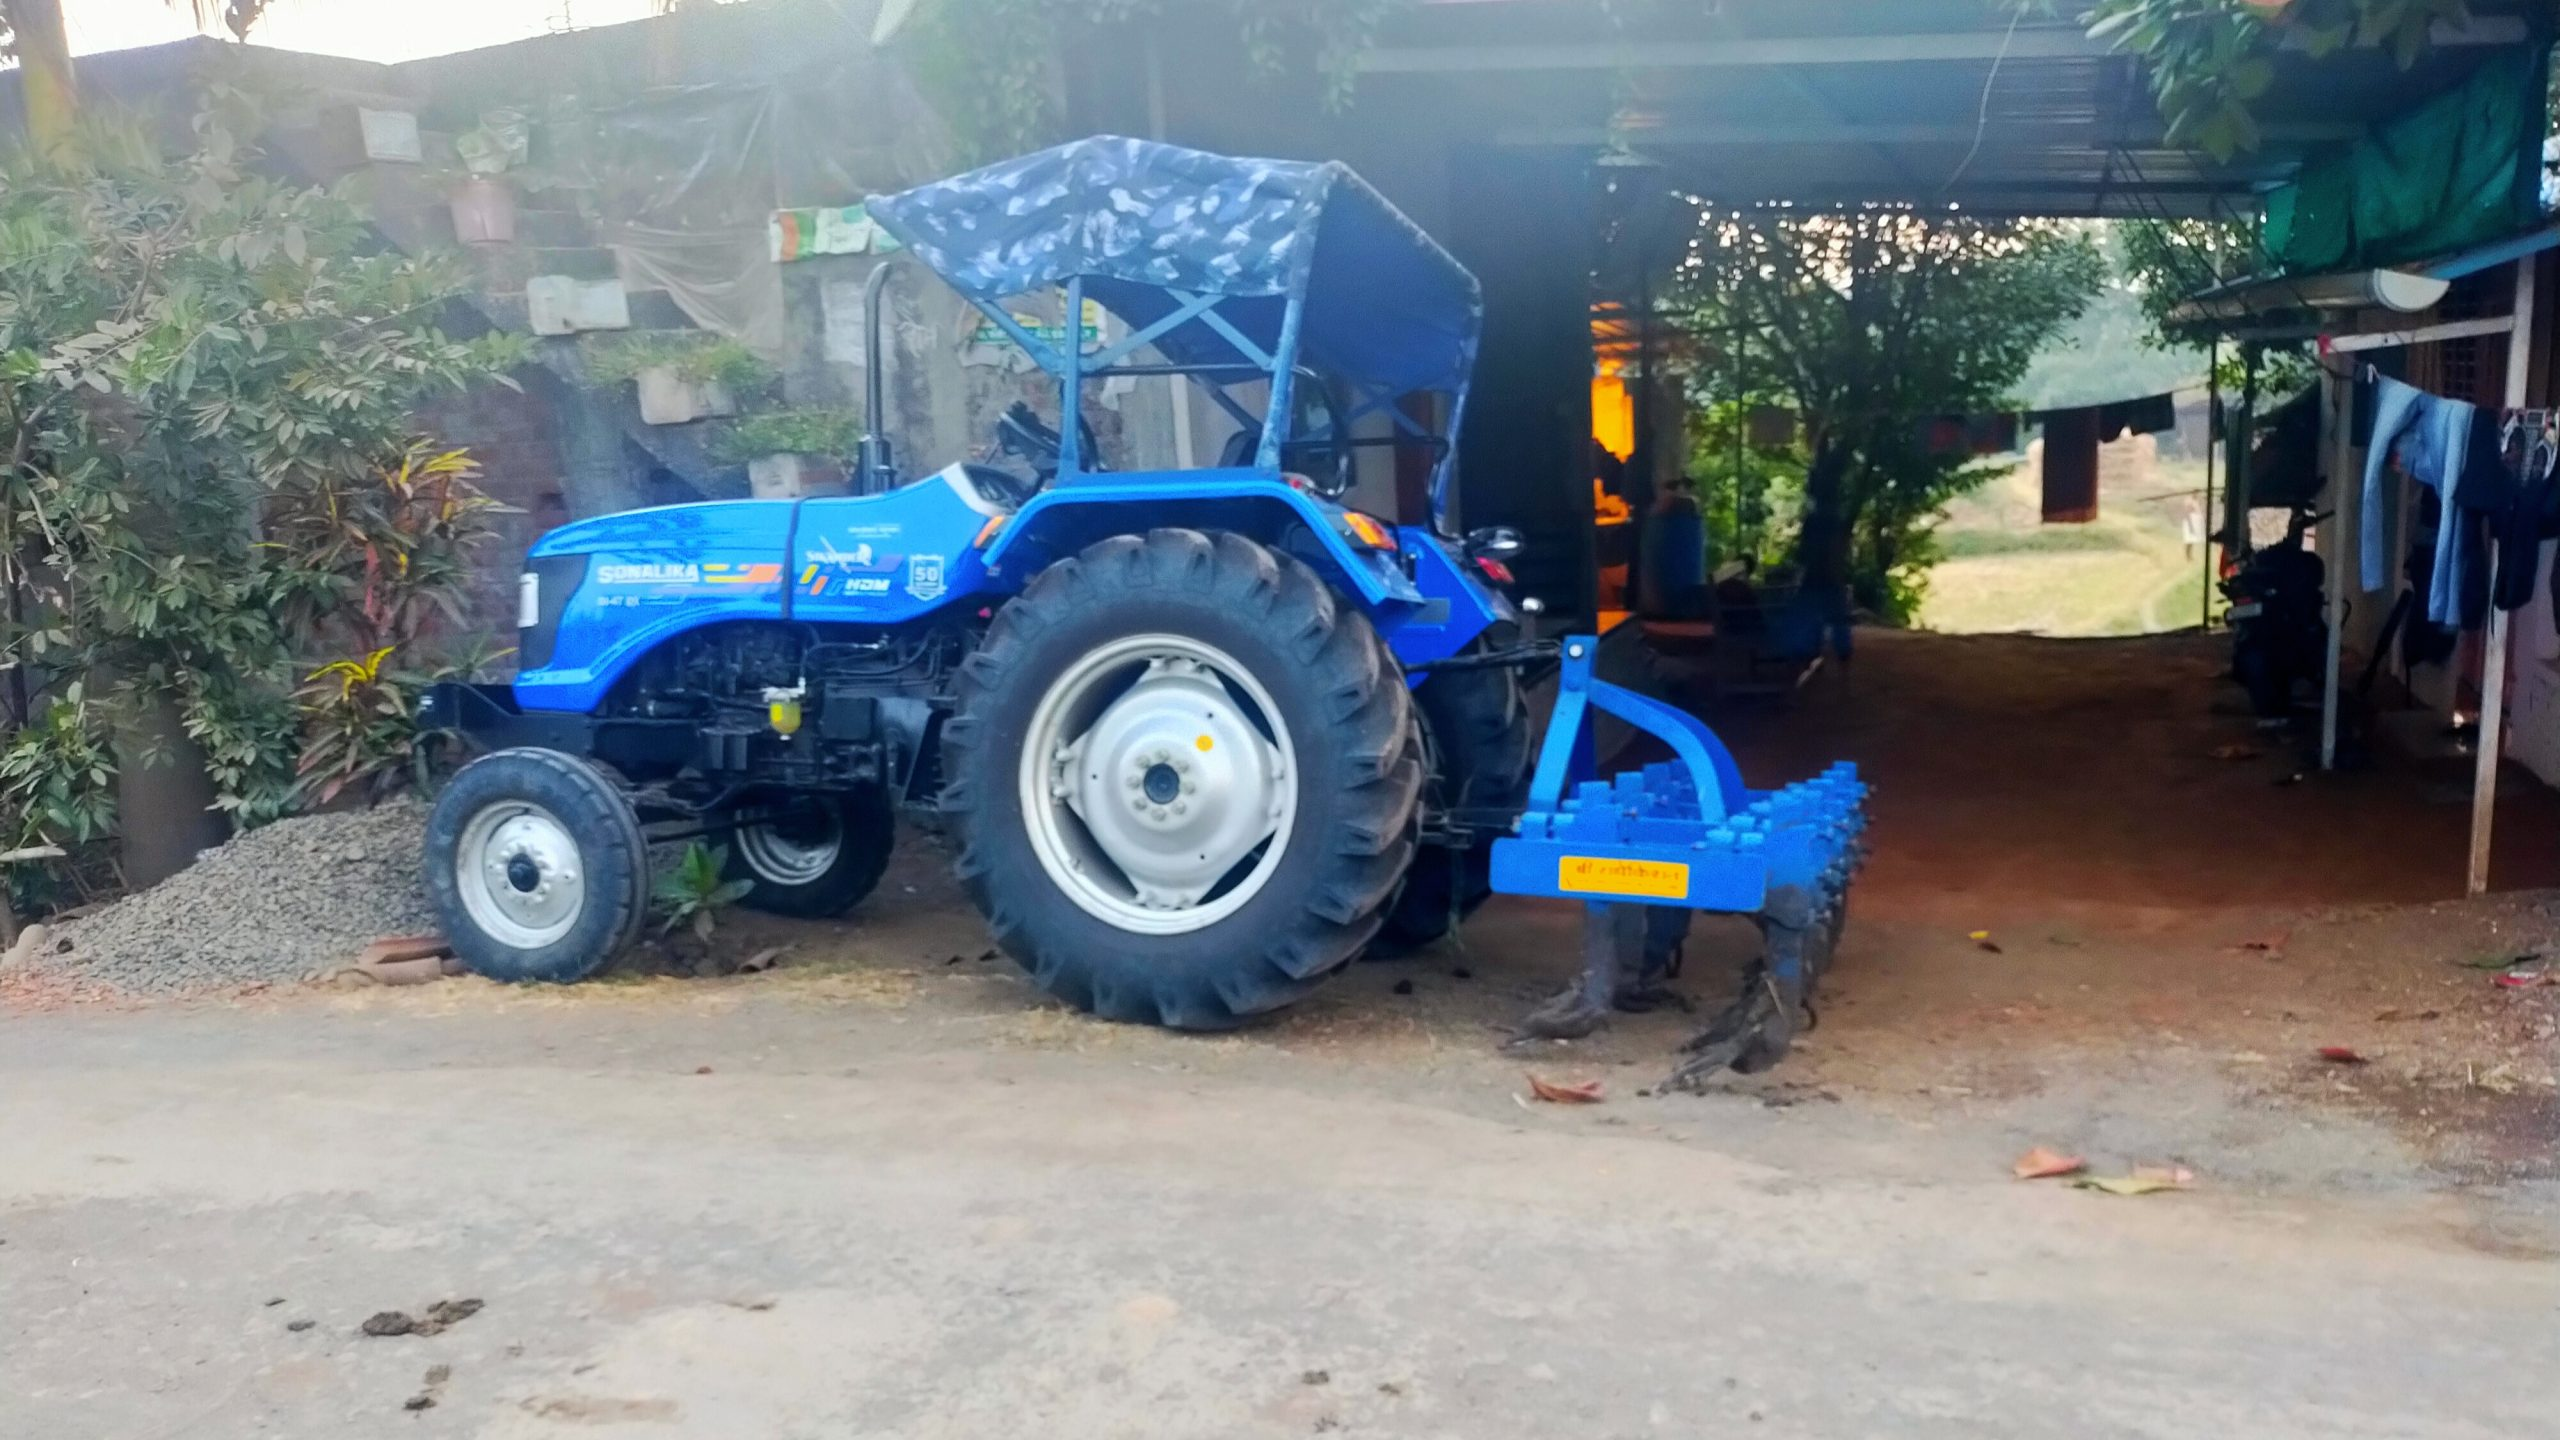 An agriculture tractor